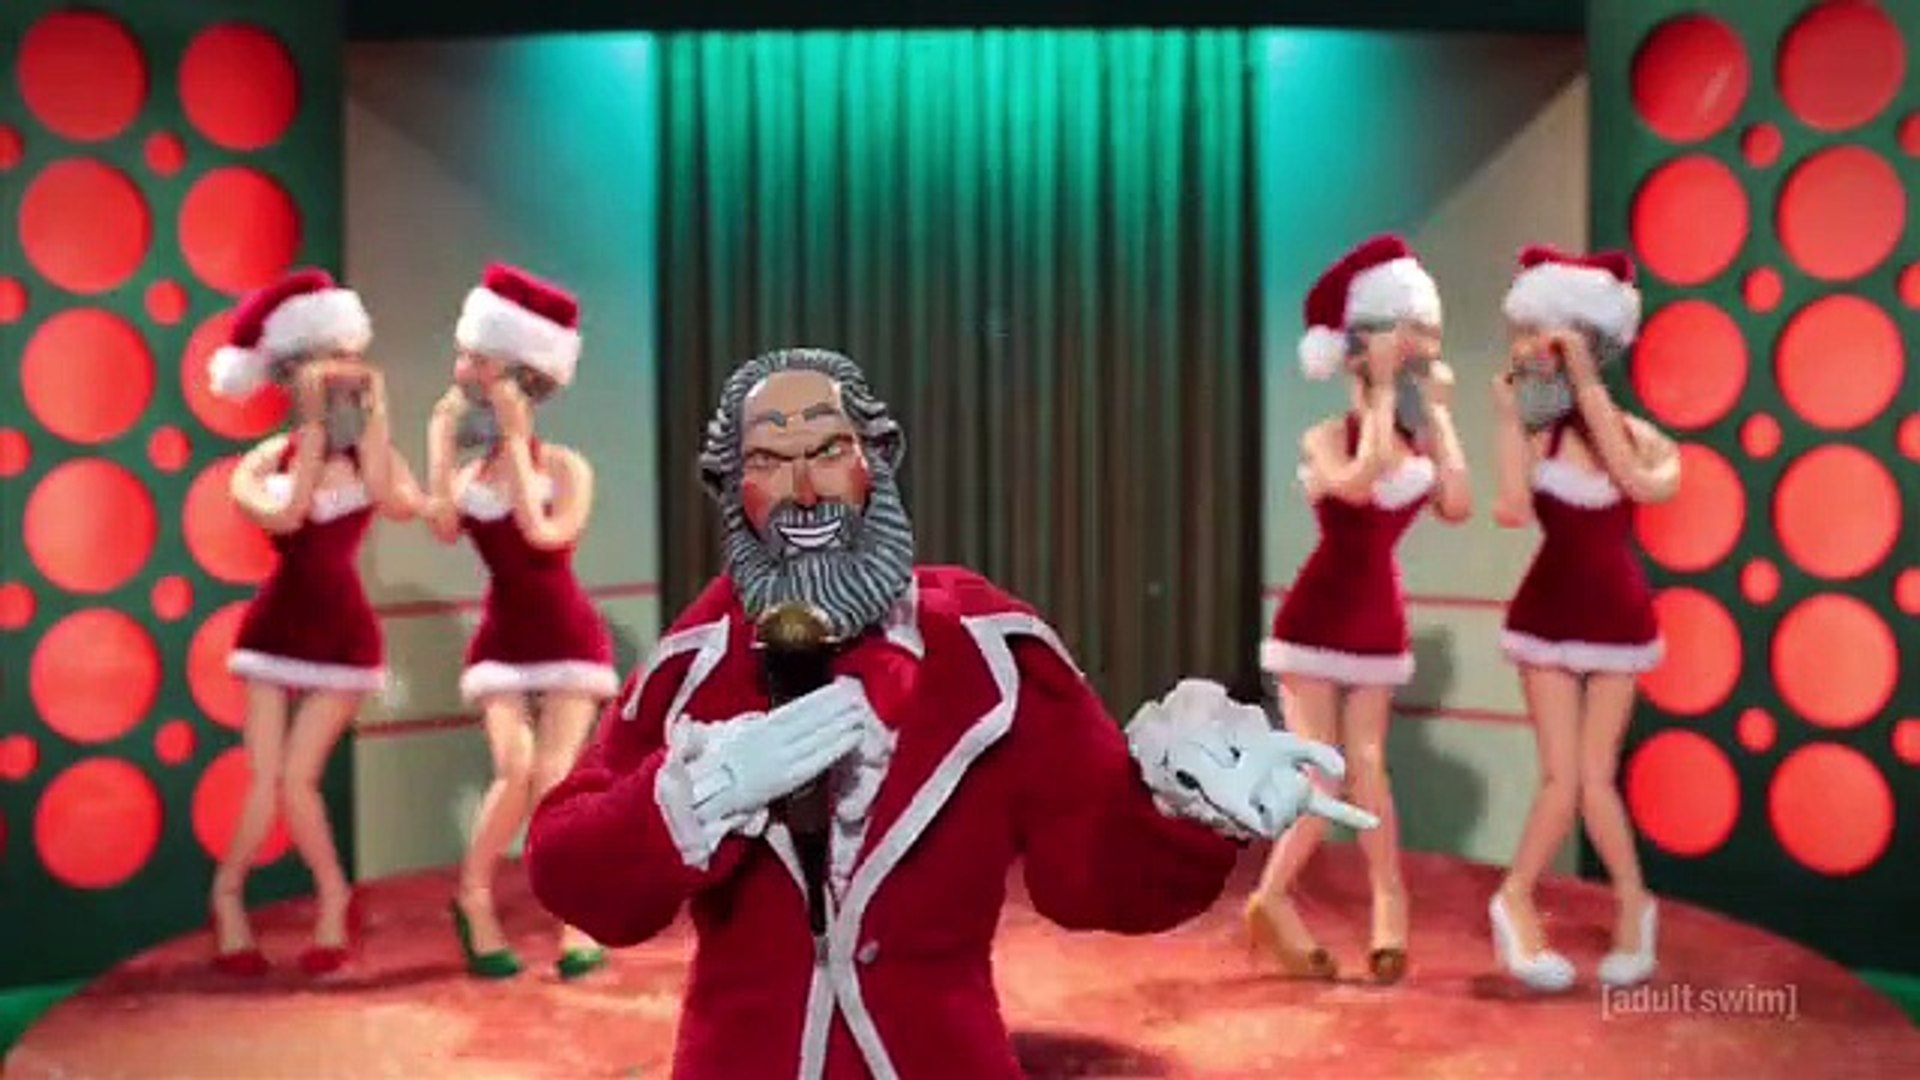 Robot Chicken S09E01 Freshly Baked: The Robot Chicken Santa Claus Pot Cookie Freakout Special: Speci